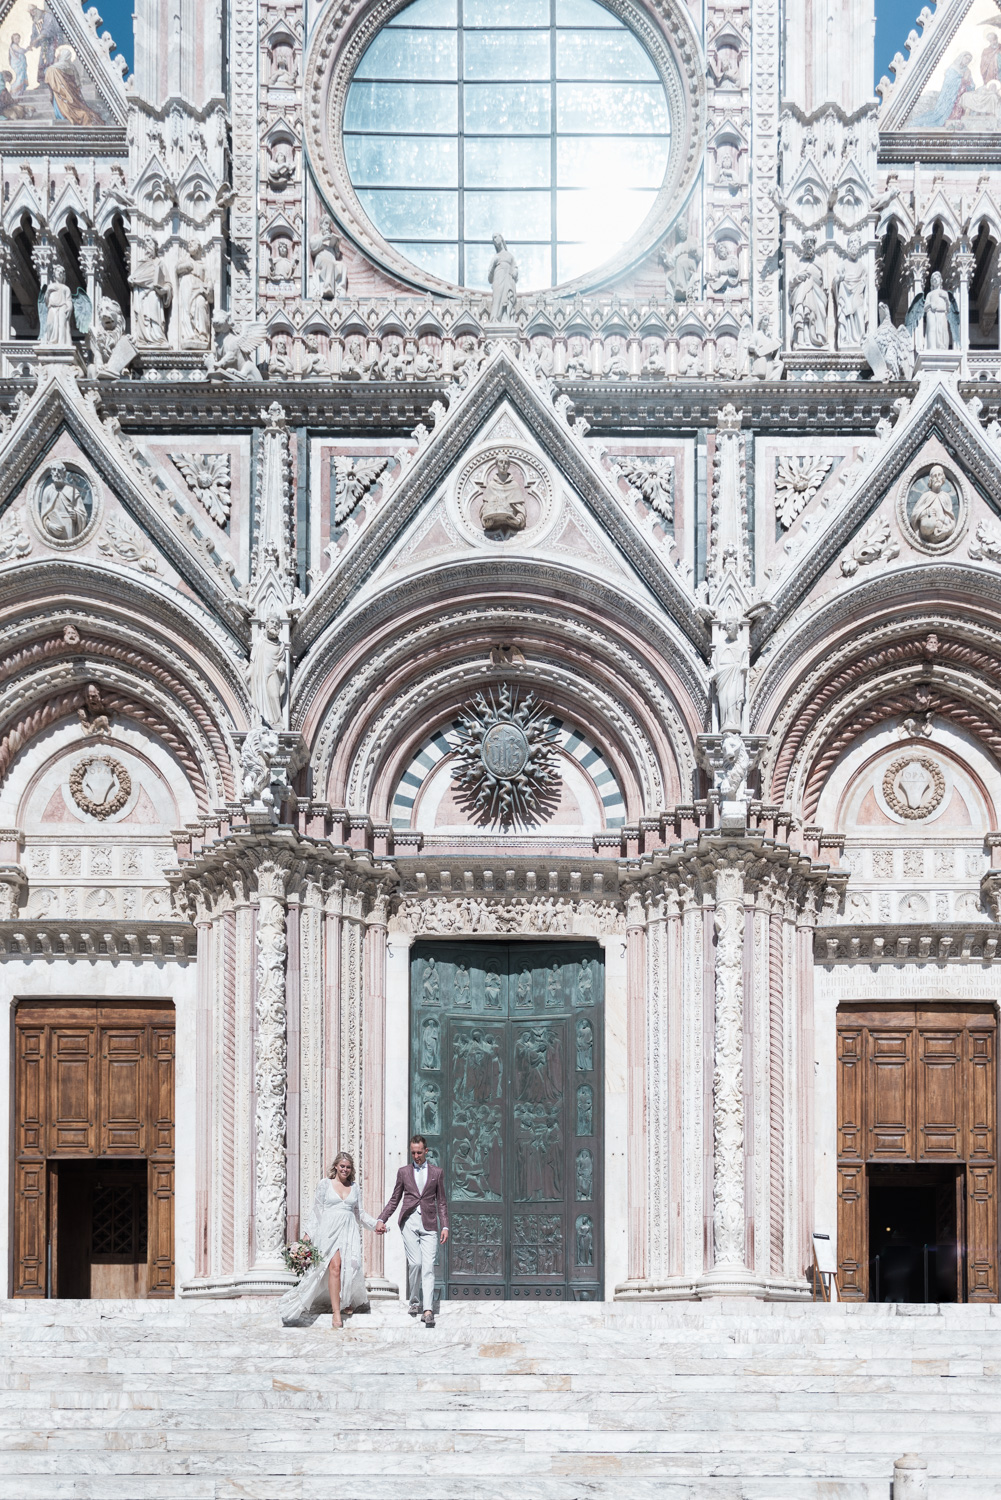 A bride and groom on the steps of the Duomo in Siena, Italy